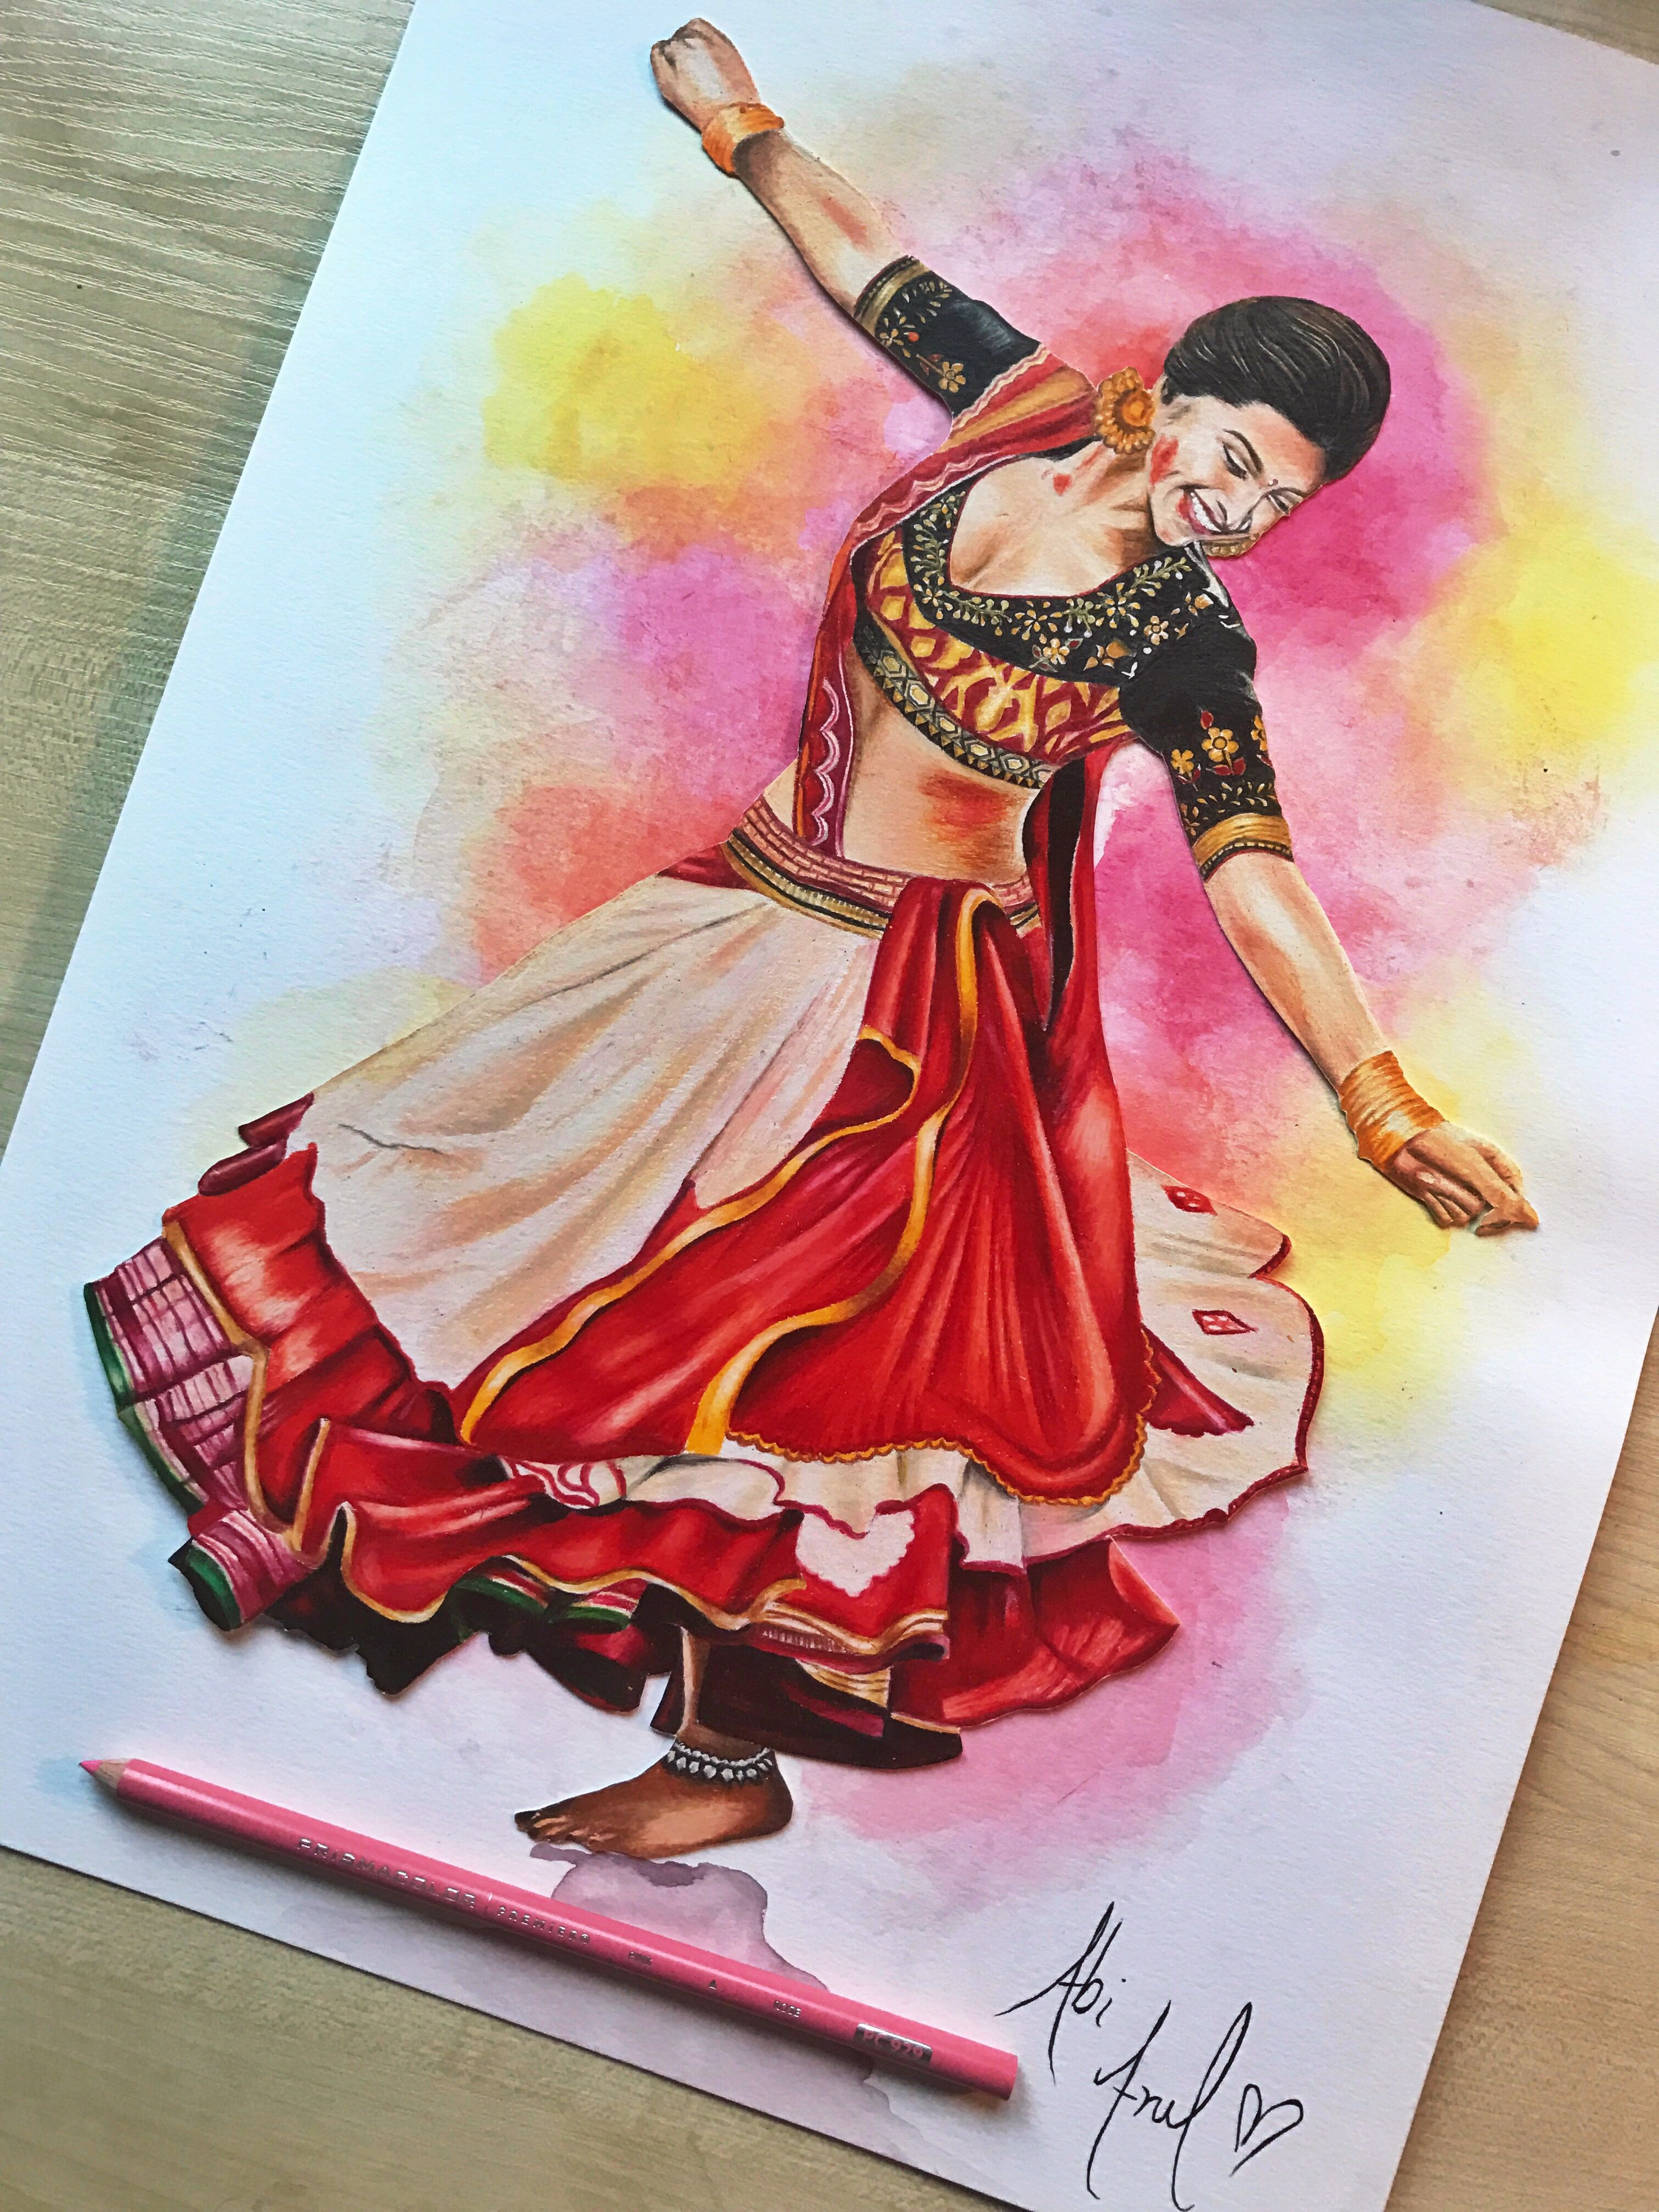 Deepika padukone ram leela drawing prismacolors colouring pencils